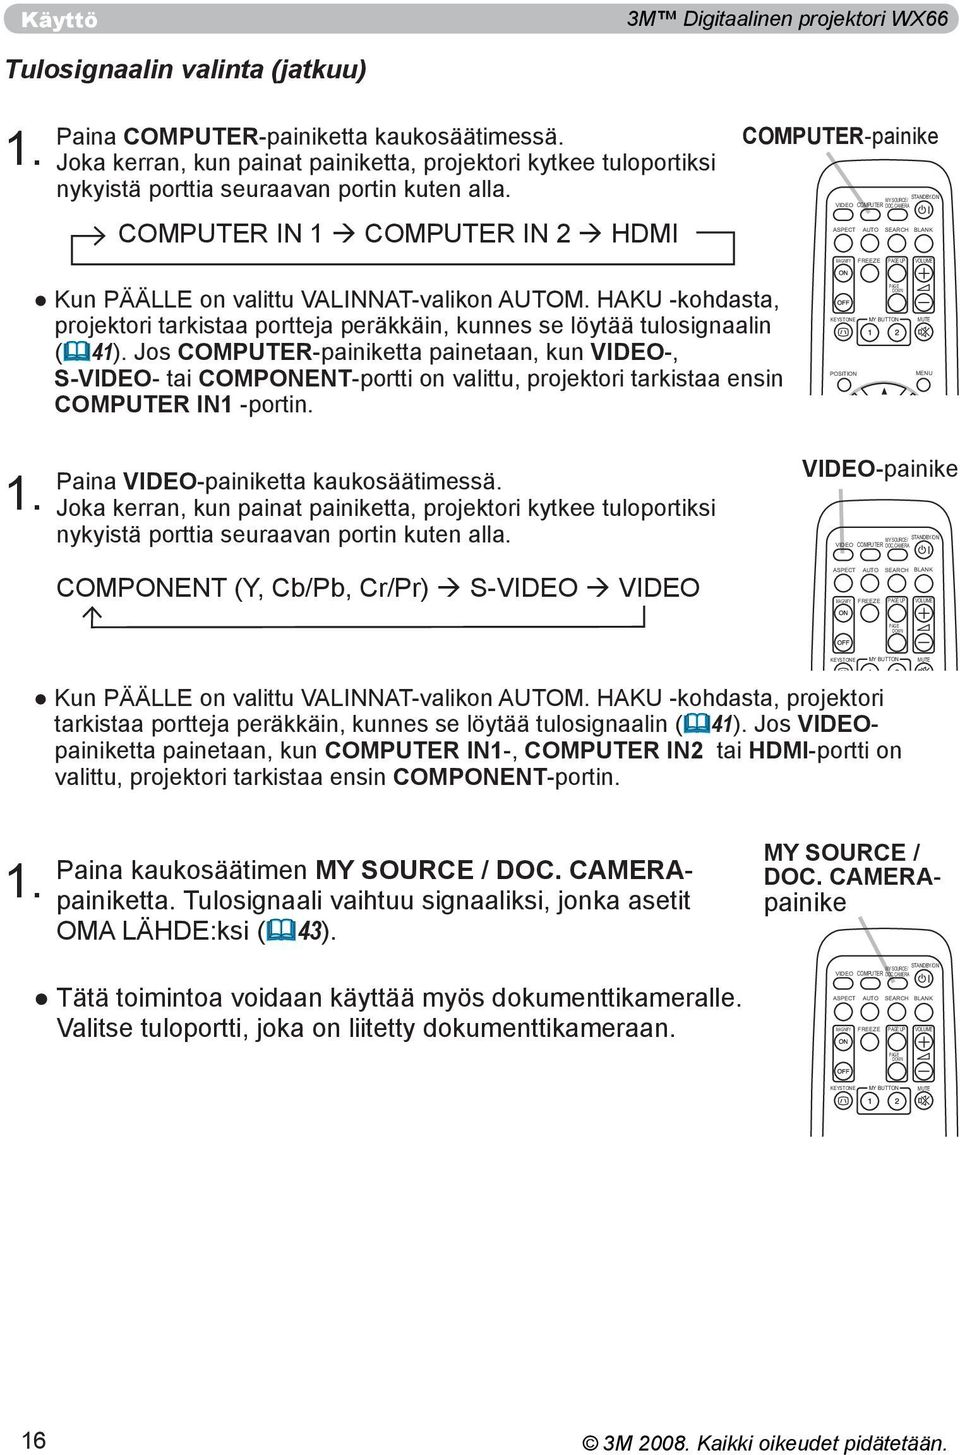 COMPUTER IN 1 COMPUTER IN 2 HDMI COMPUTER-painike STANDBY/ON MY SOURCE/ VIDEO COMPUTER DOC.CAMERA ASPECT AUTO SEARCH BLANK MAGNIFY FREEZE PAGE UP VOLUME Kun PÄÄLLE on valittu VALINNAT-valikon AUTOM.